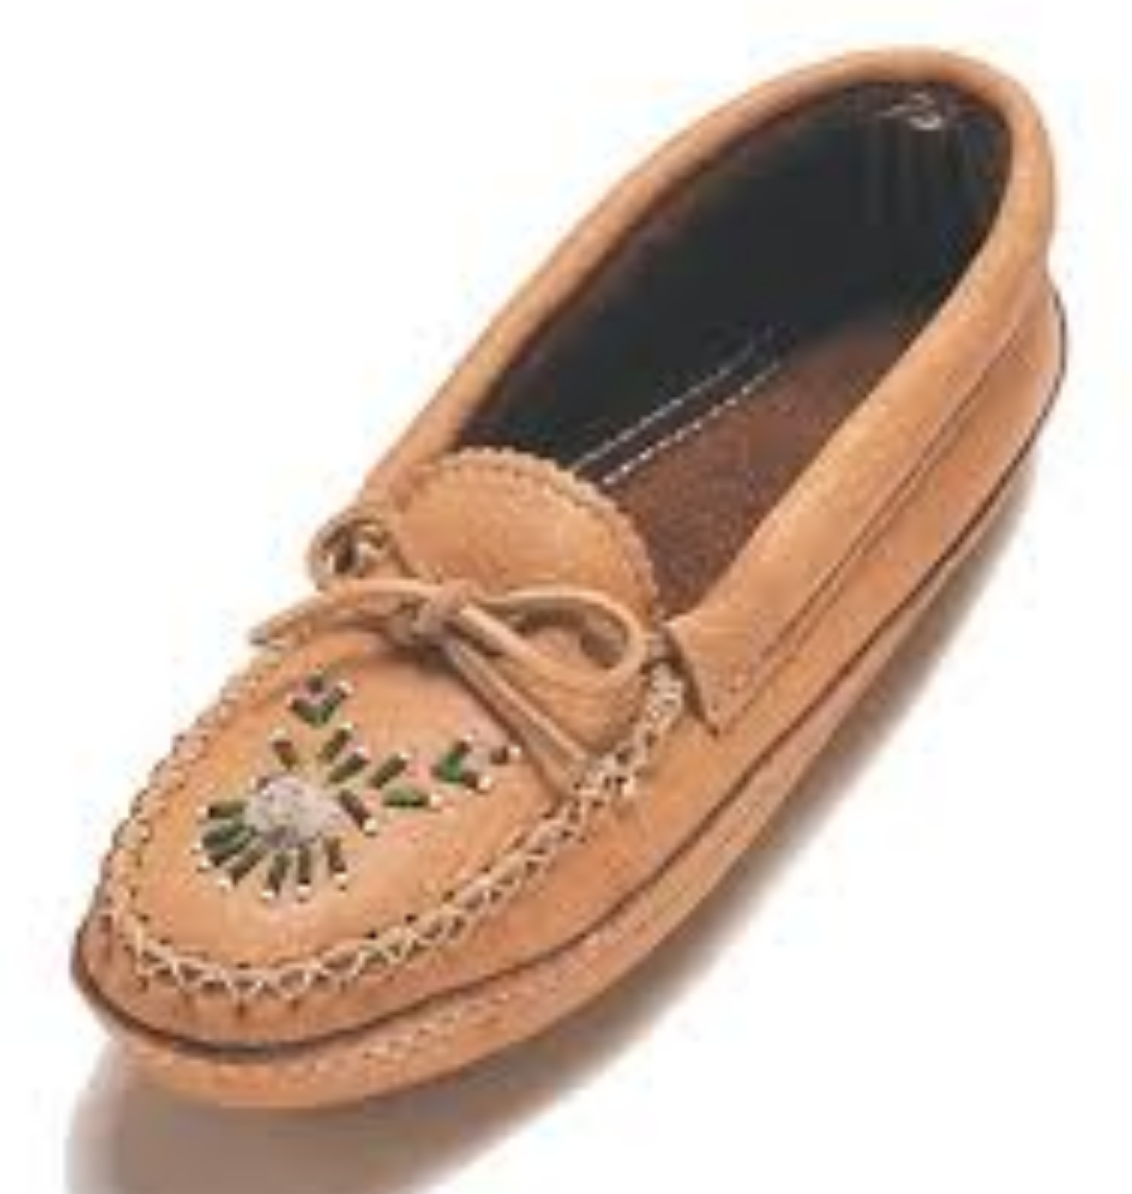 Moccasin with Moosehide Tufting